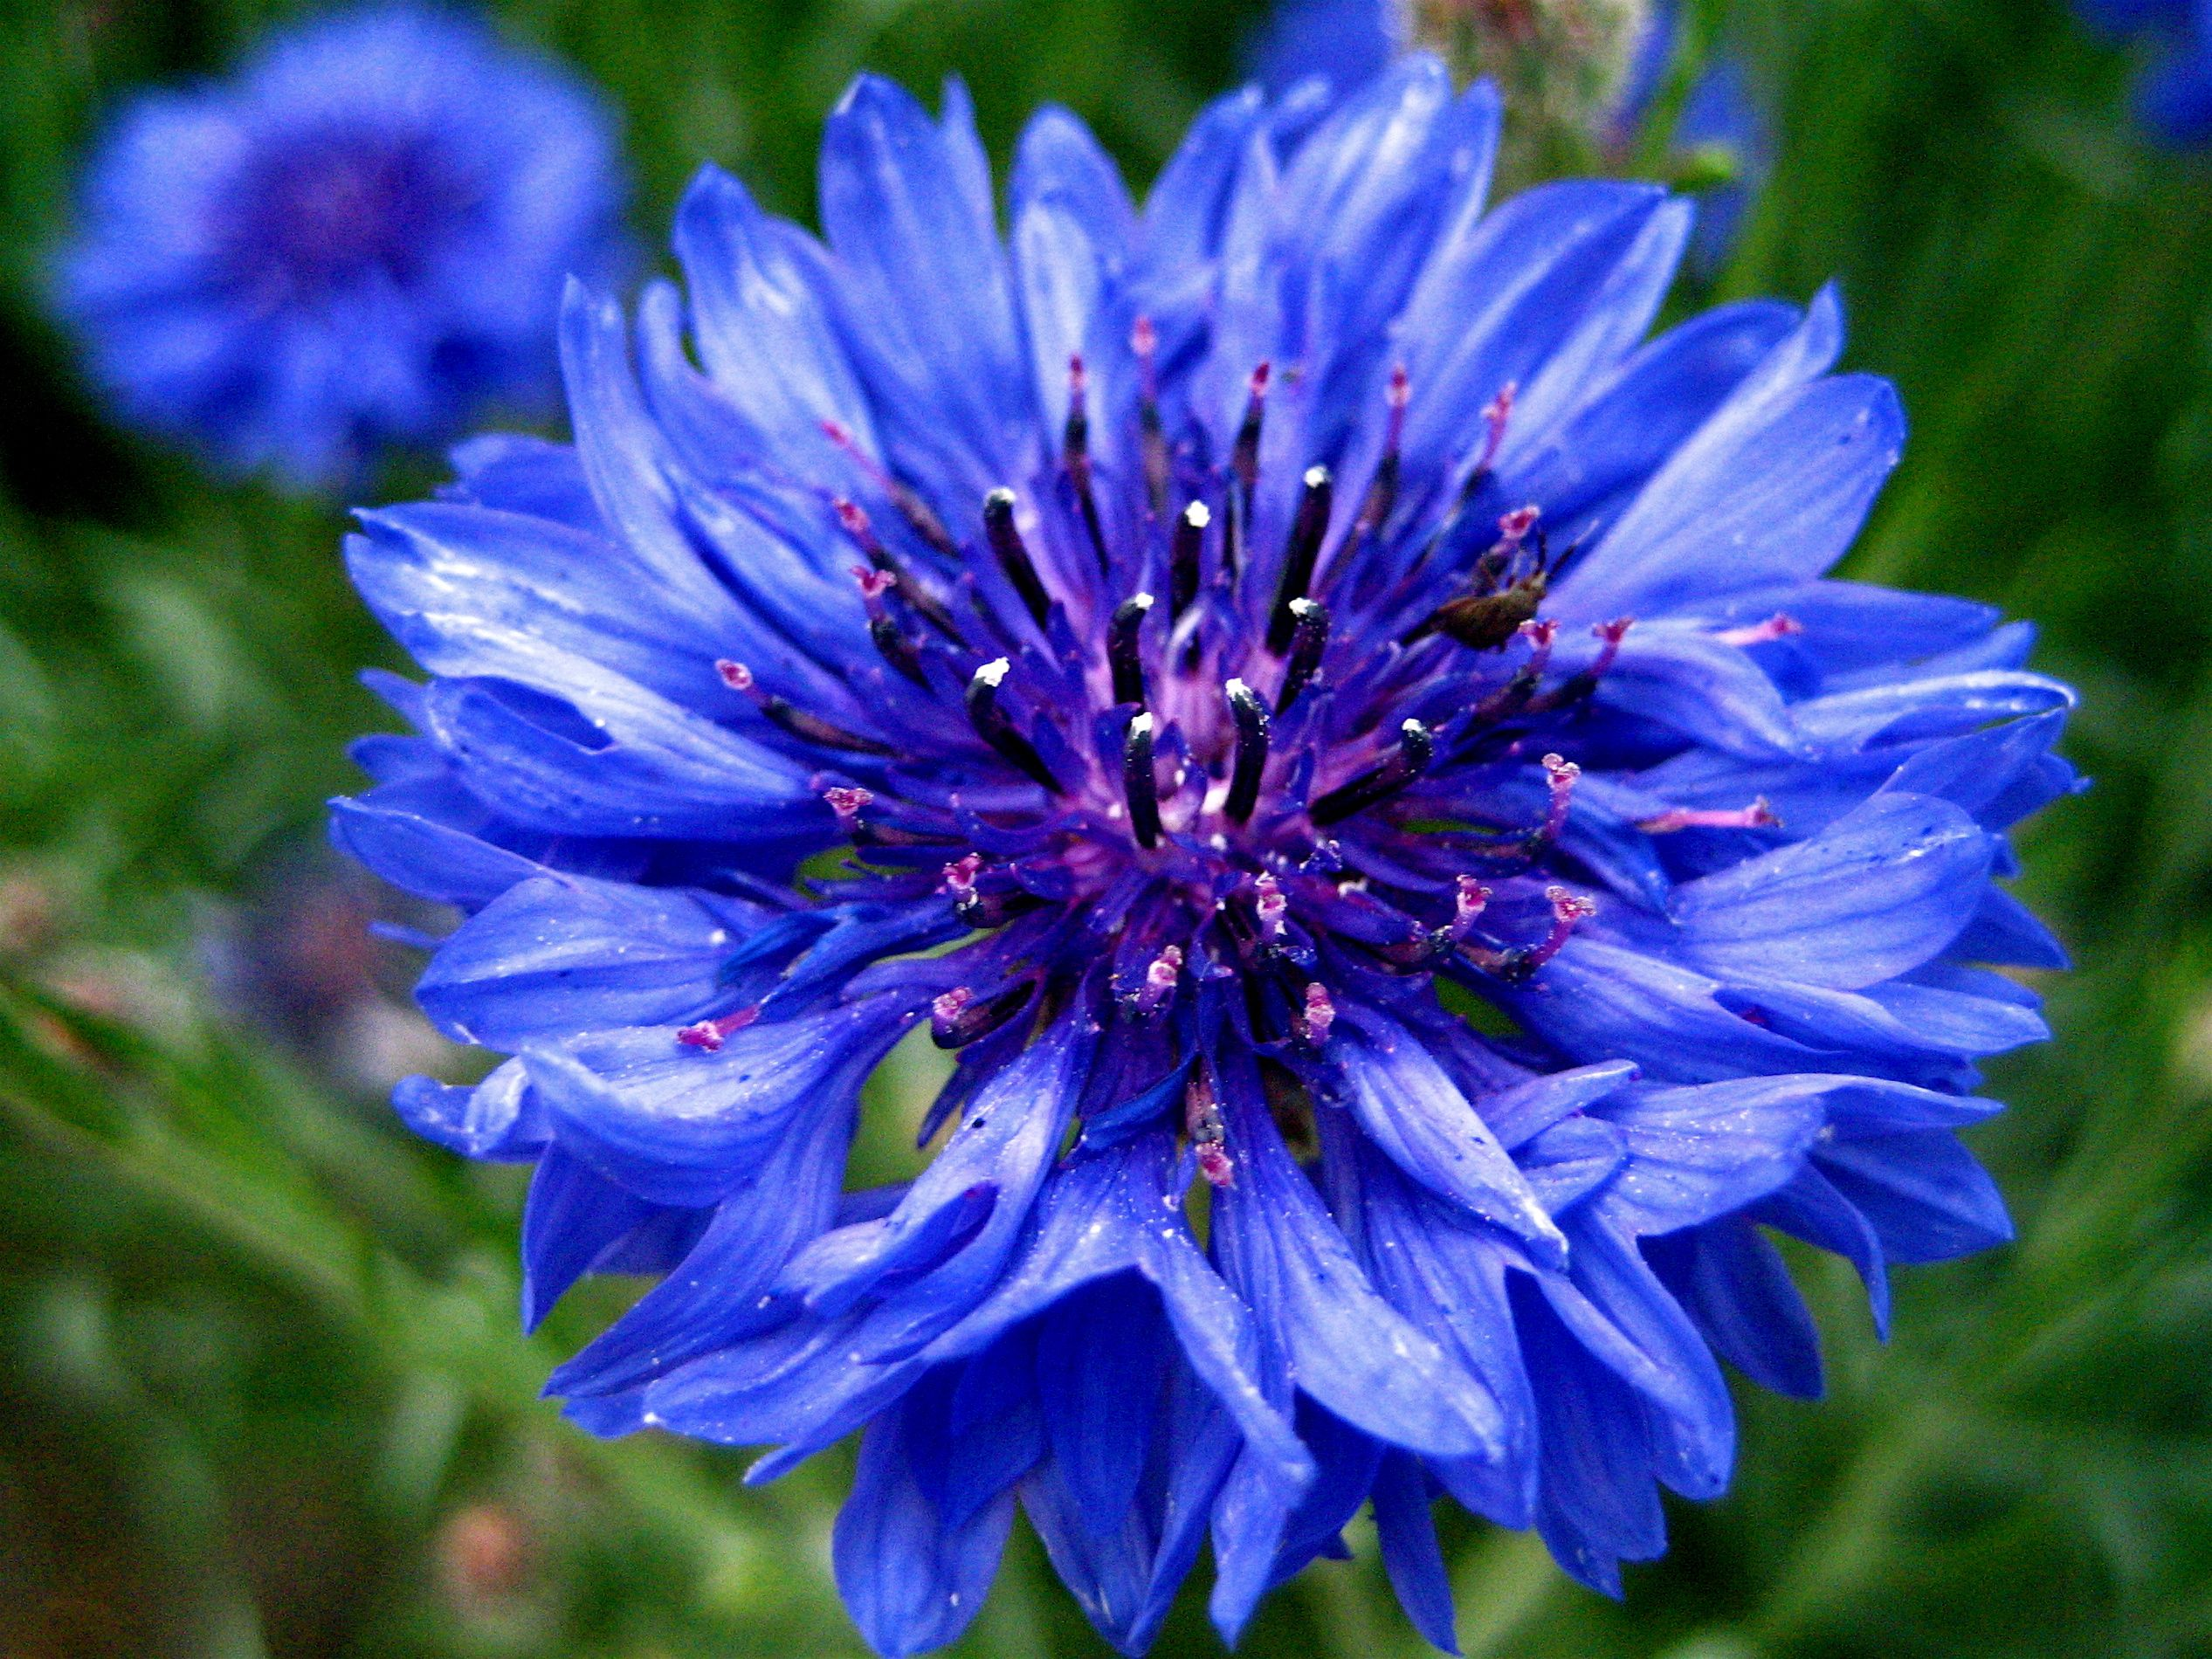 Cornflowers Can Eliminate Gallstones And Make Your Skin Healthy